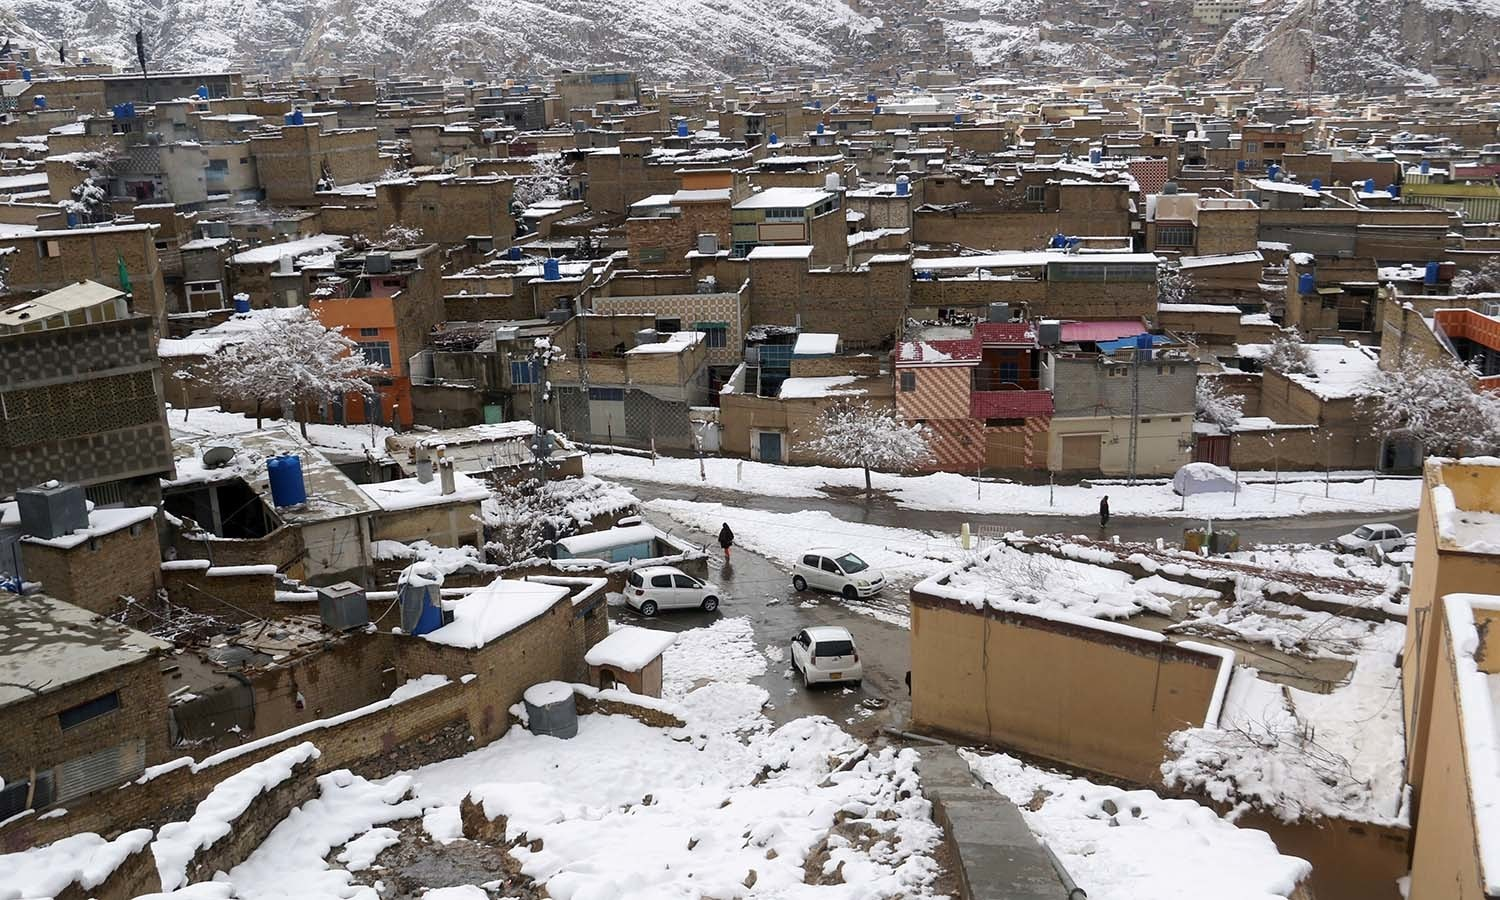 A view of residential area after a snowfall in Mariabad, Quetta. — Reuters